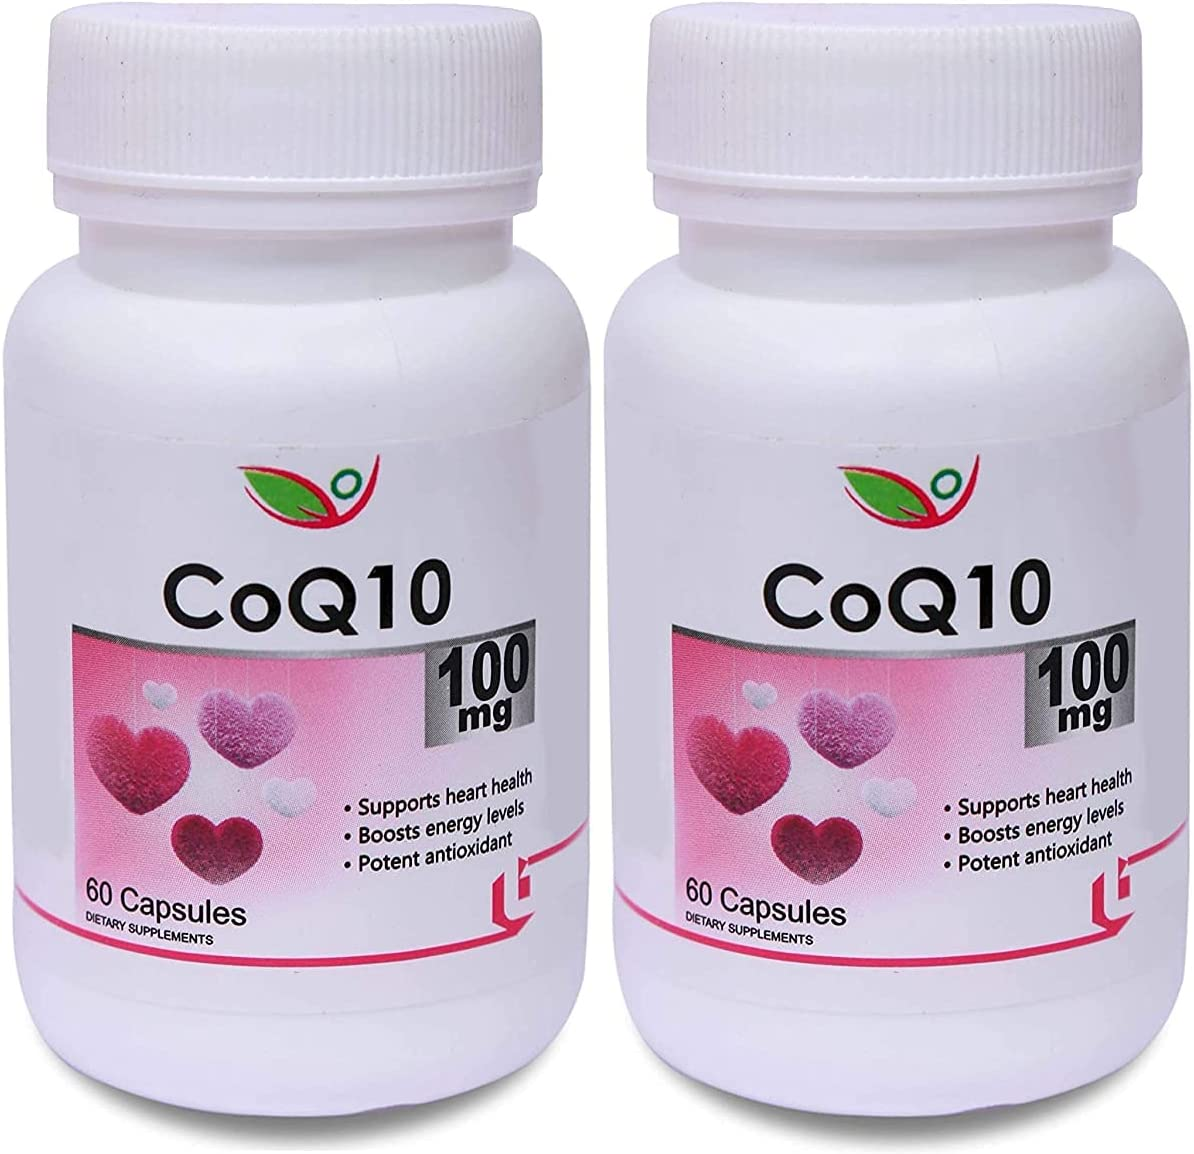 Trims Our shop most popular Biotrex CoQ10 100mg 60 Capsules of Potent antio New Free Shipping Pack 2